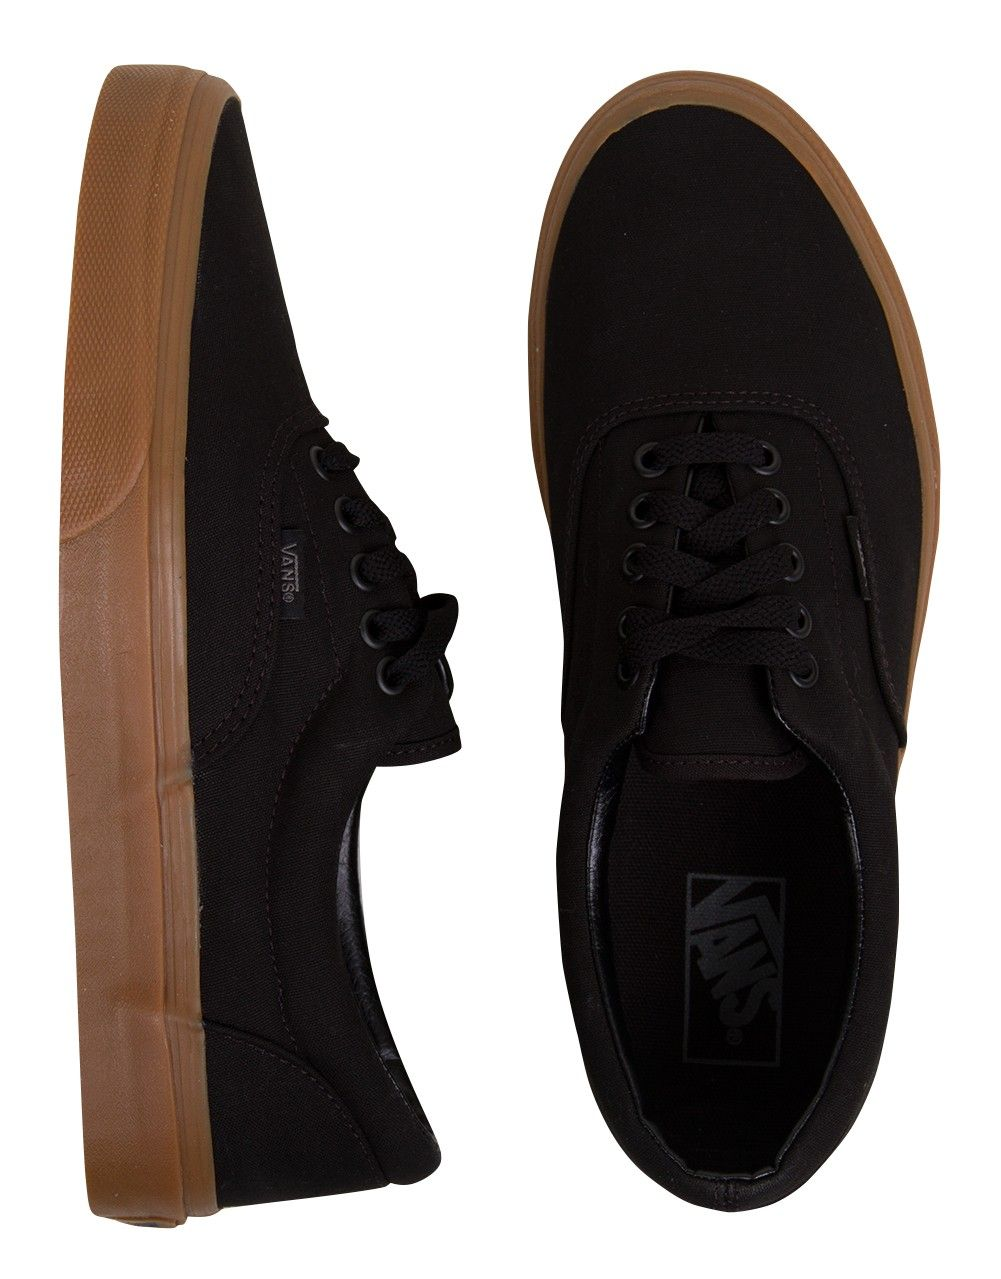 24b711507c Vans Era Shoes - Black Classic Gum